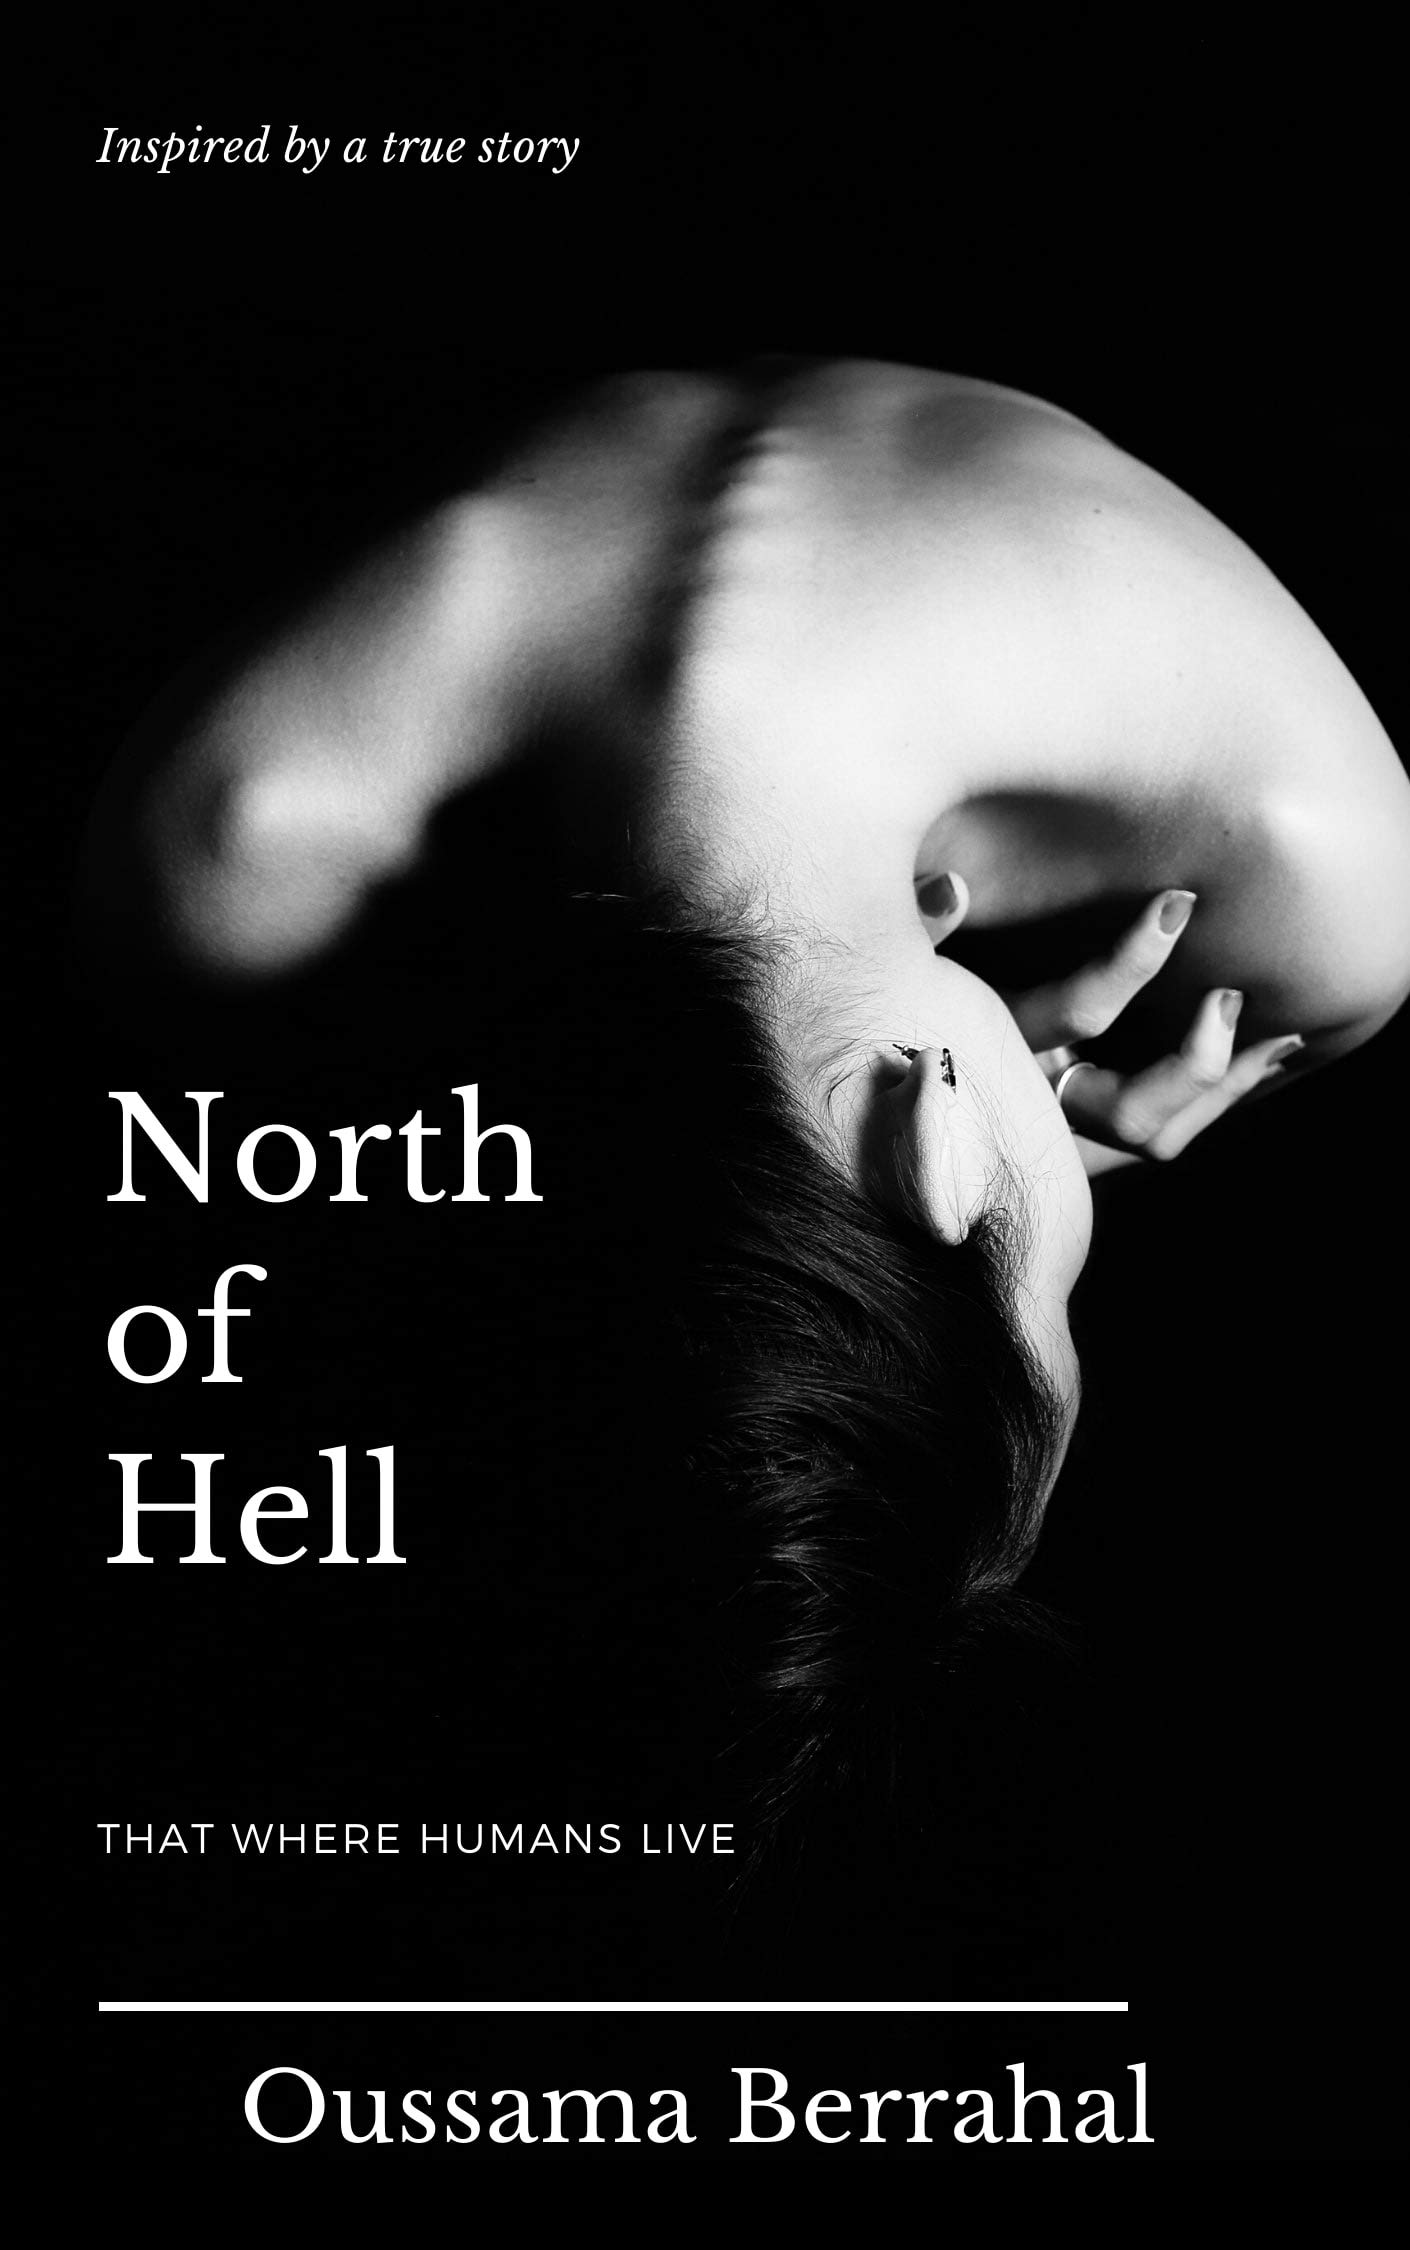 North of Hell : That where humans live: Based on a true story